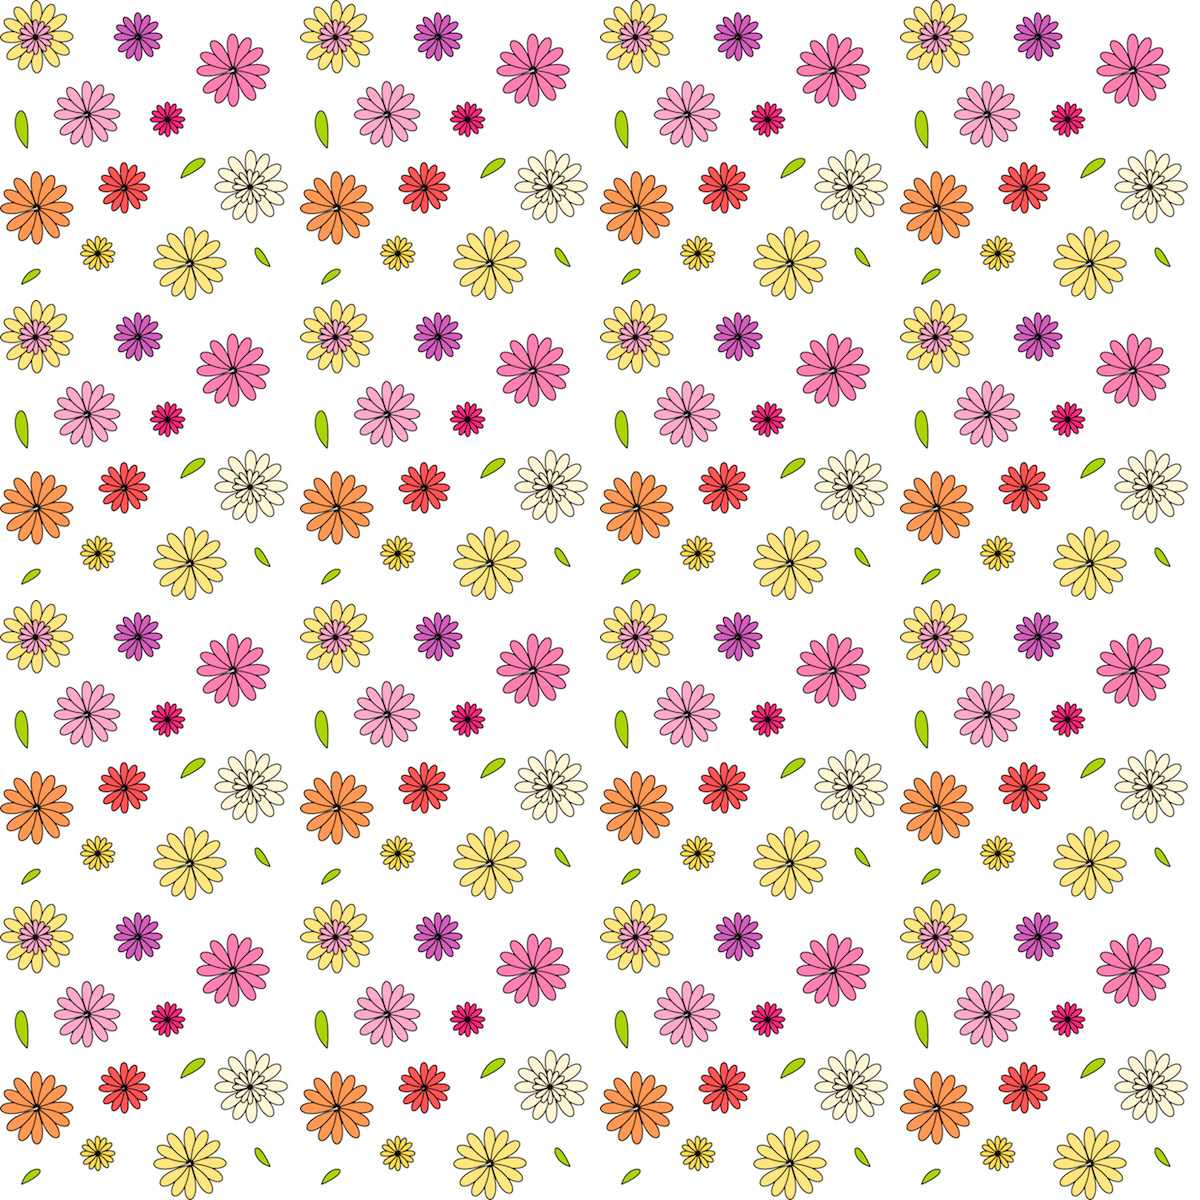 It's just a photo of Dynamite Free Scrapbook Paper Printable